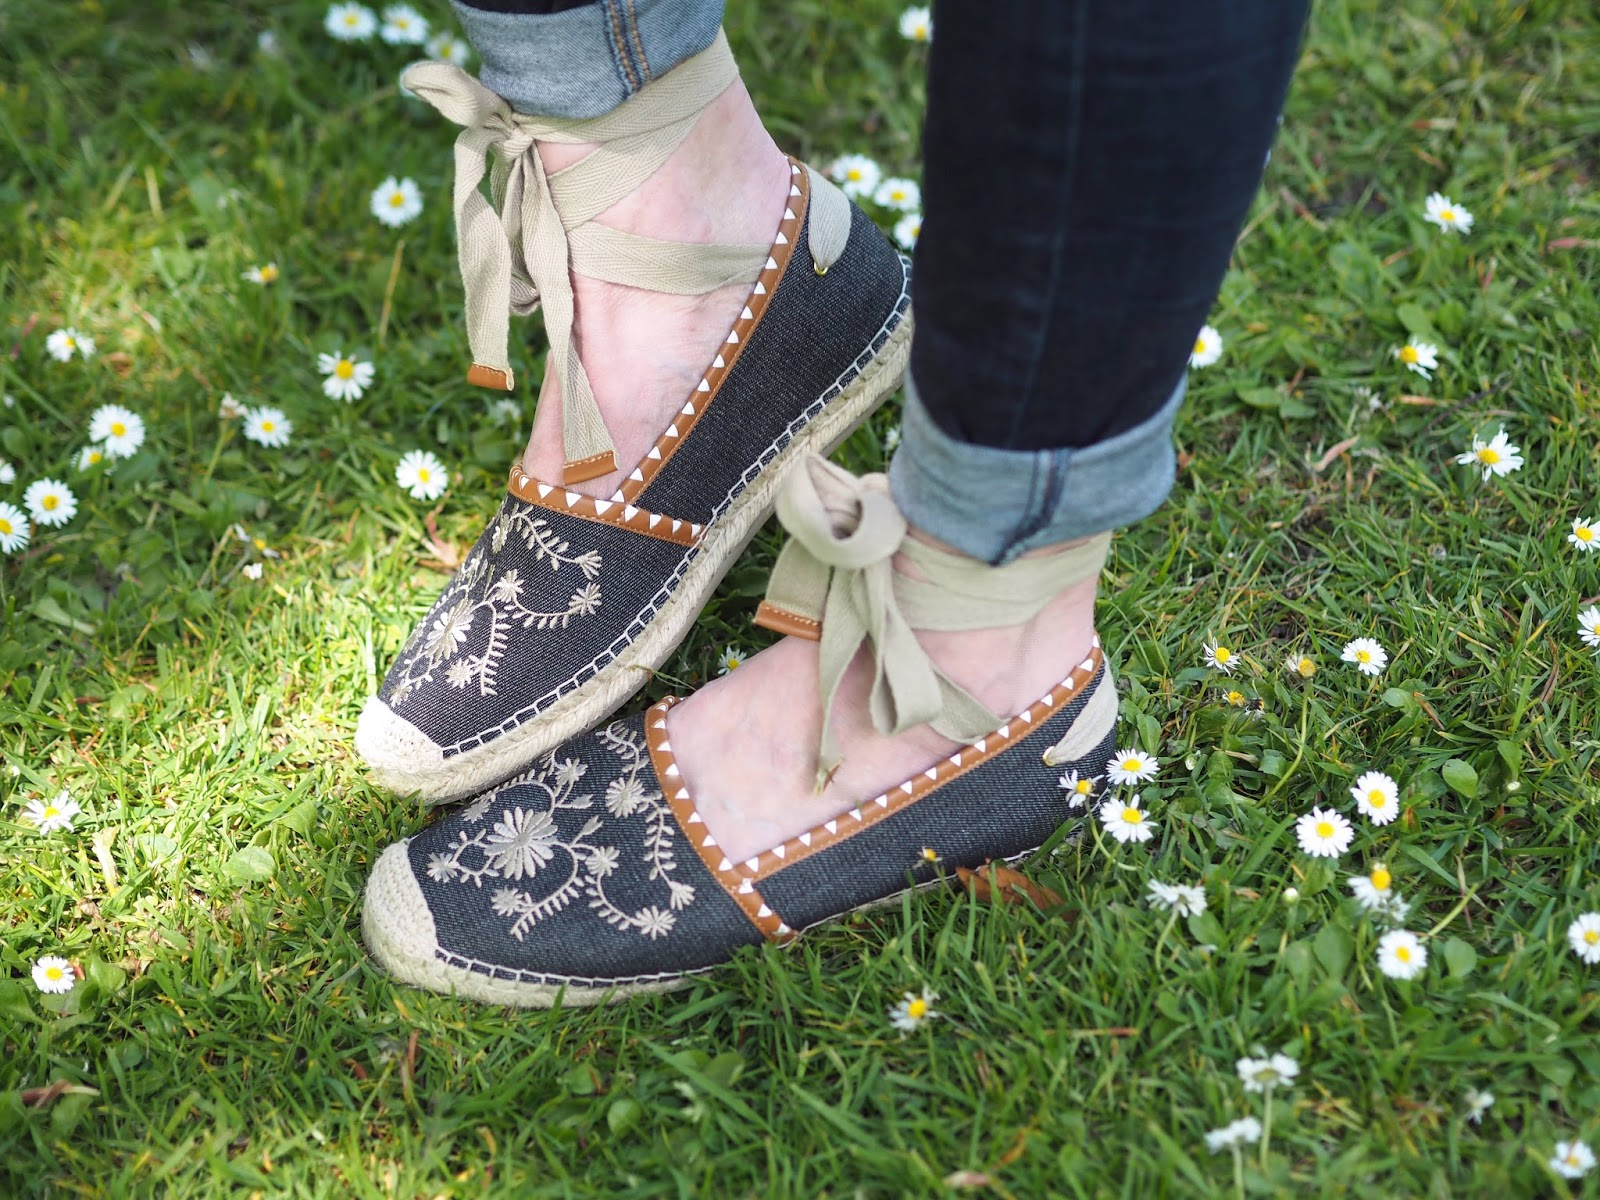 What-Lizzy-Loves-white-daisy-embroidered-linen-top-skinny-jeans-flower-embroidered-tie-espadrilles